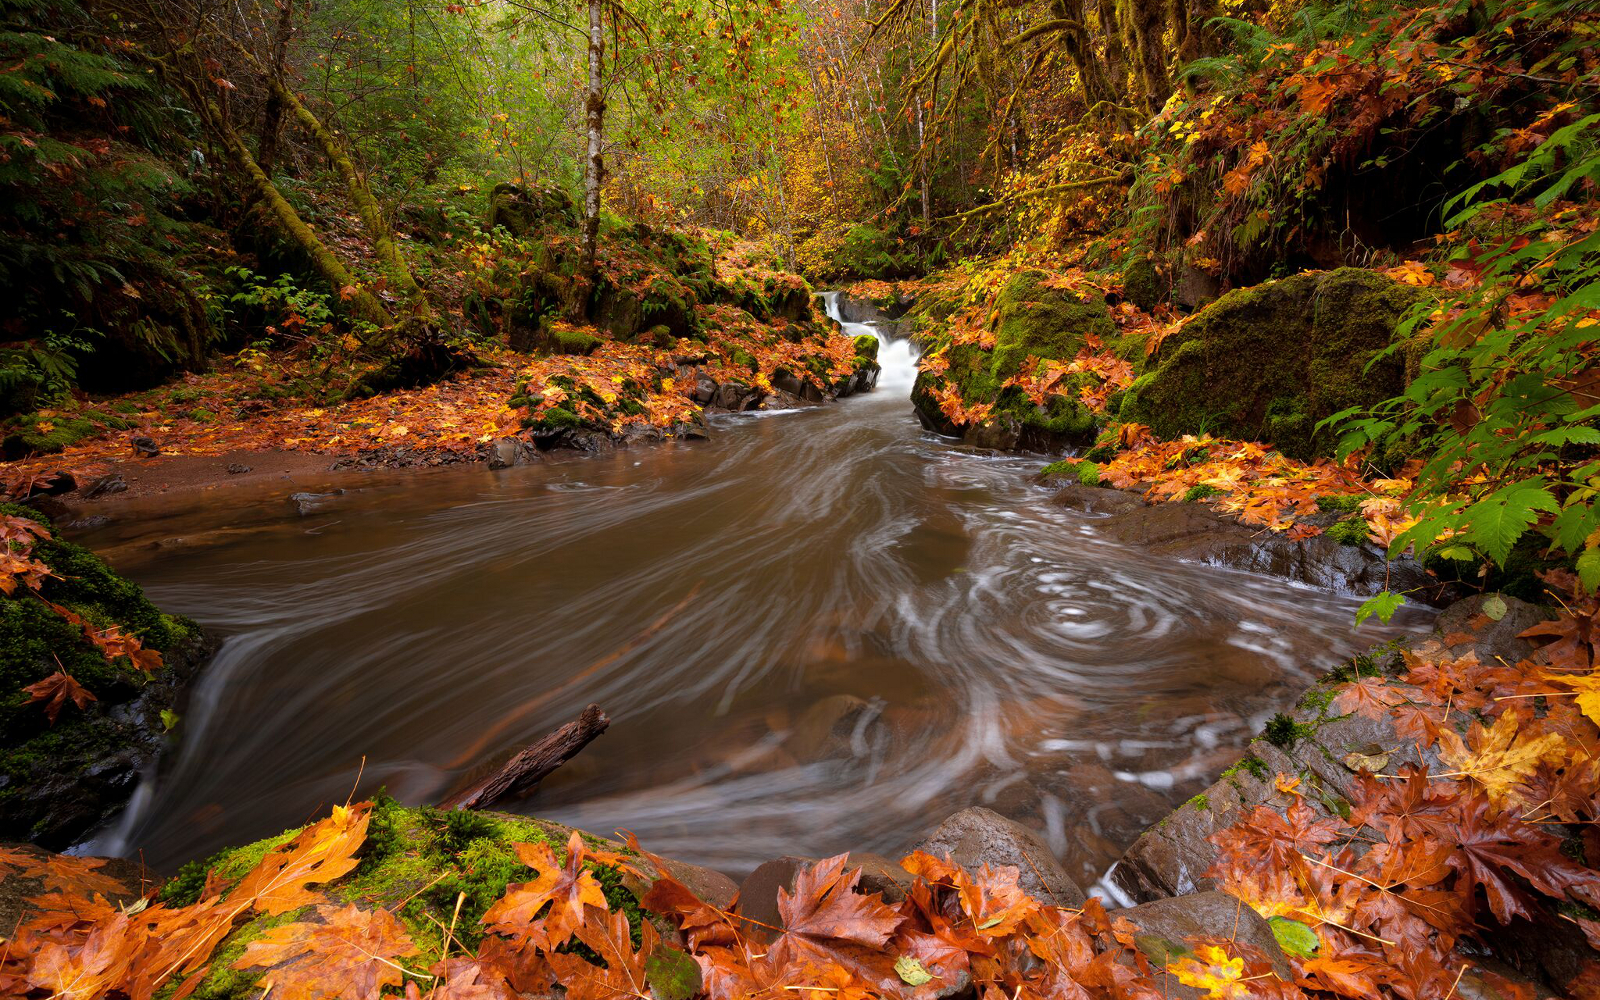 Press Release: Oregon Court Rules Sale of Elliott State Forest Tract Illegal